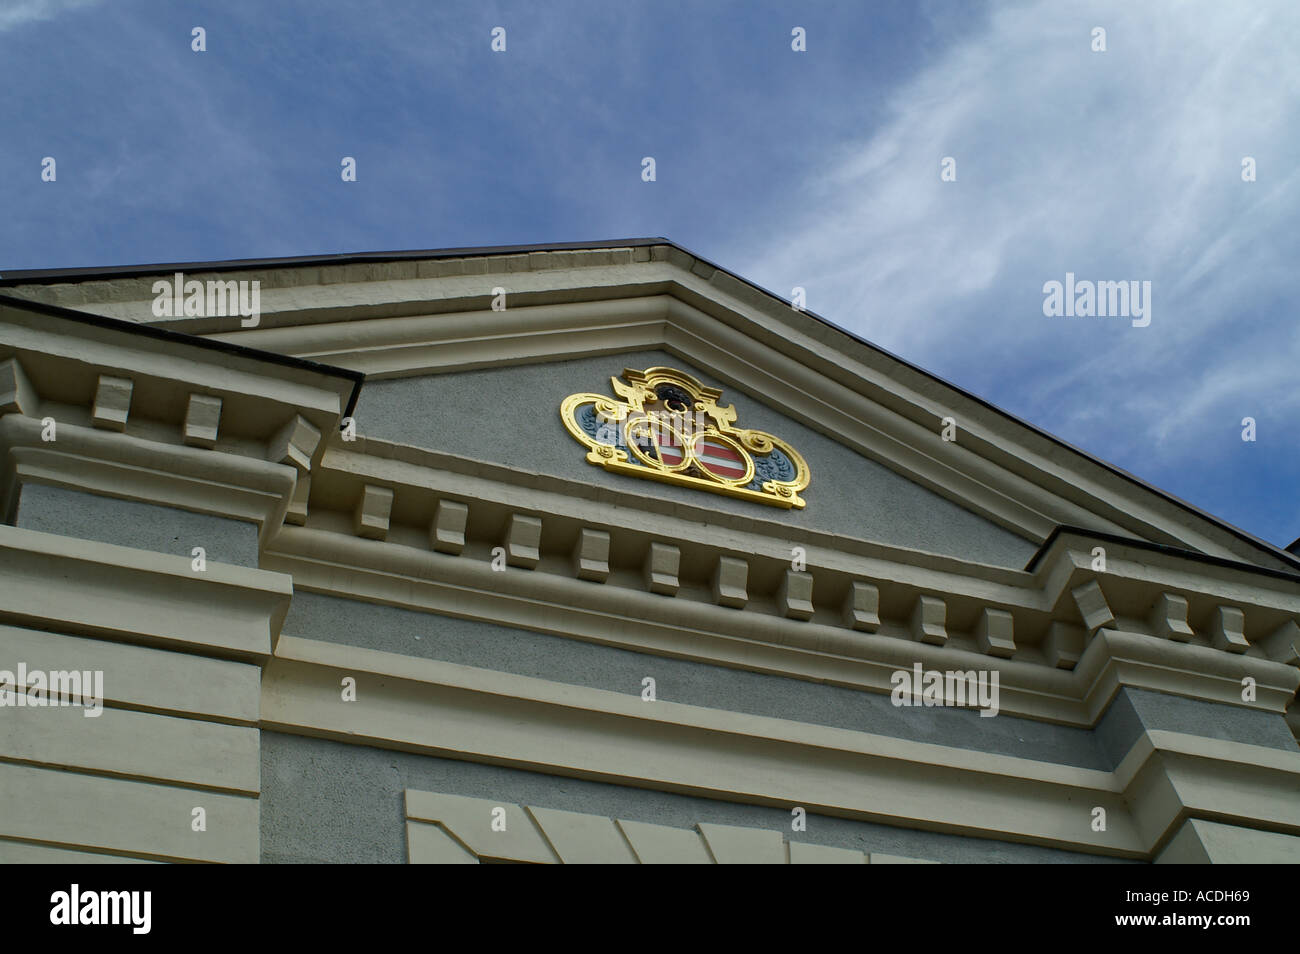 detail Zeughaus Wismar Hanse town city Germany Mecklenburg Pomerania - Stock Image